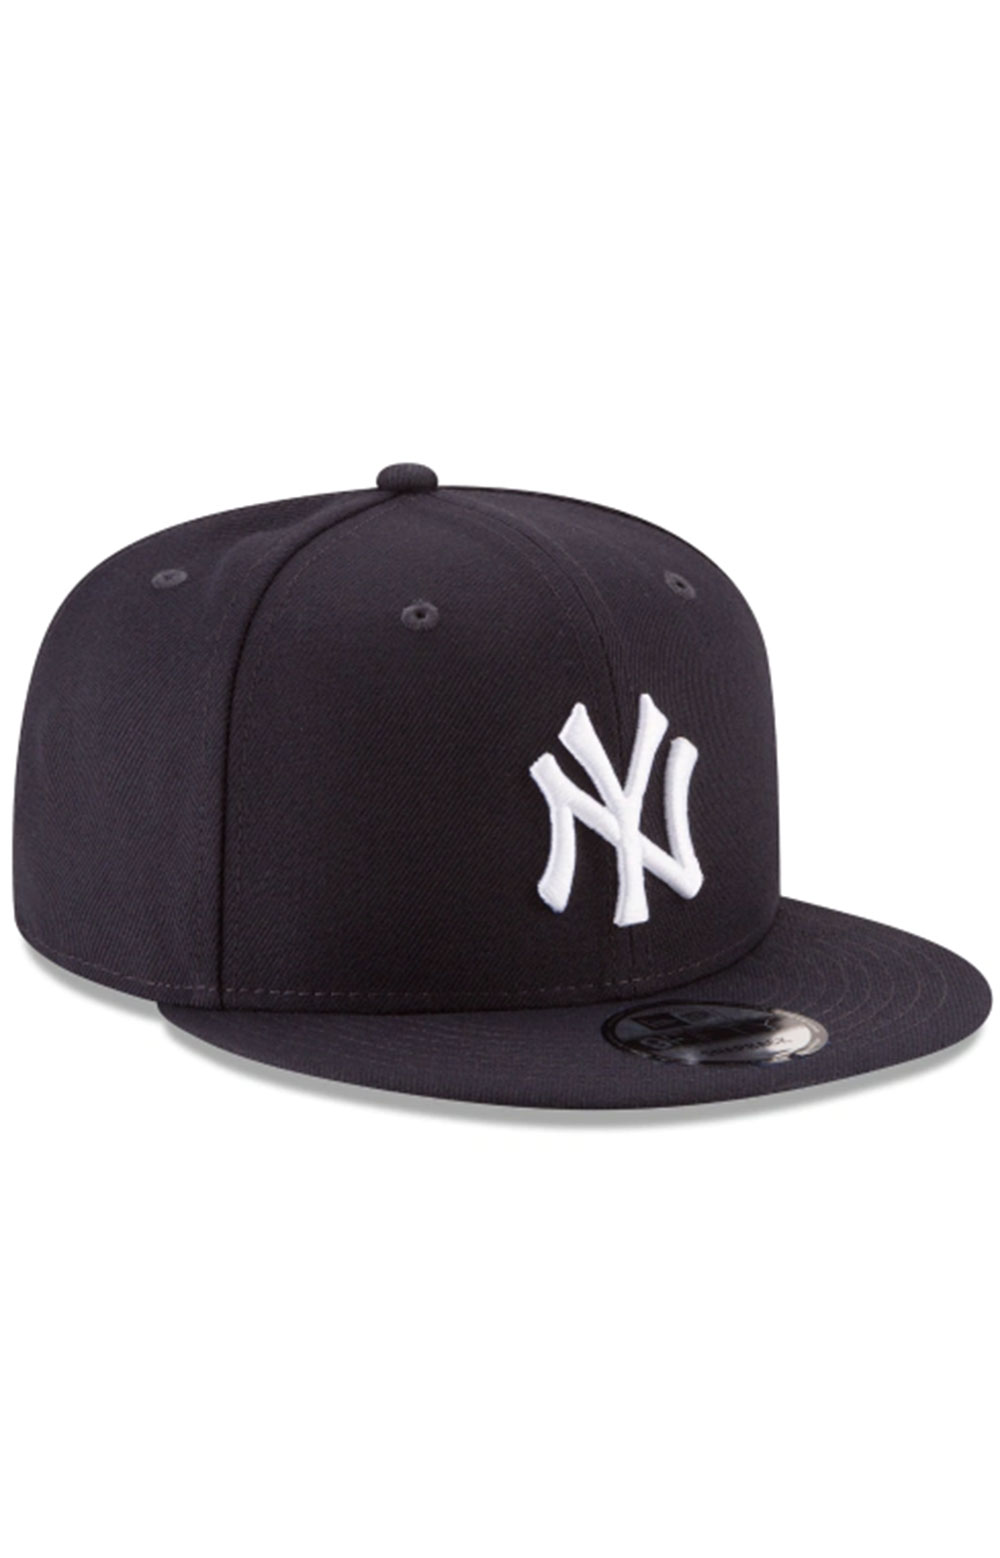 New York Yankees Team Color Basic 9Fifty Snap-Back Hat  5